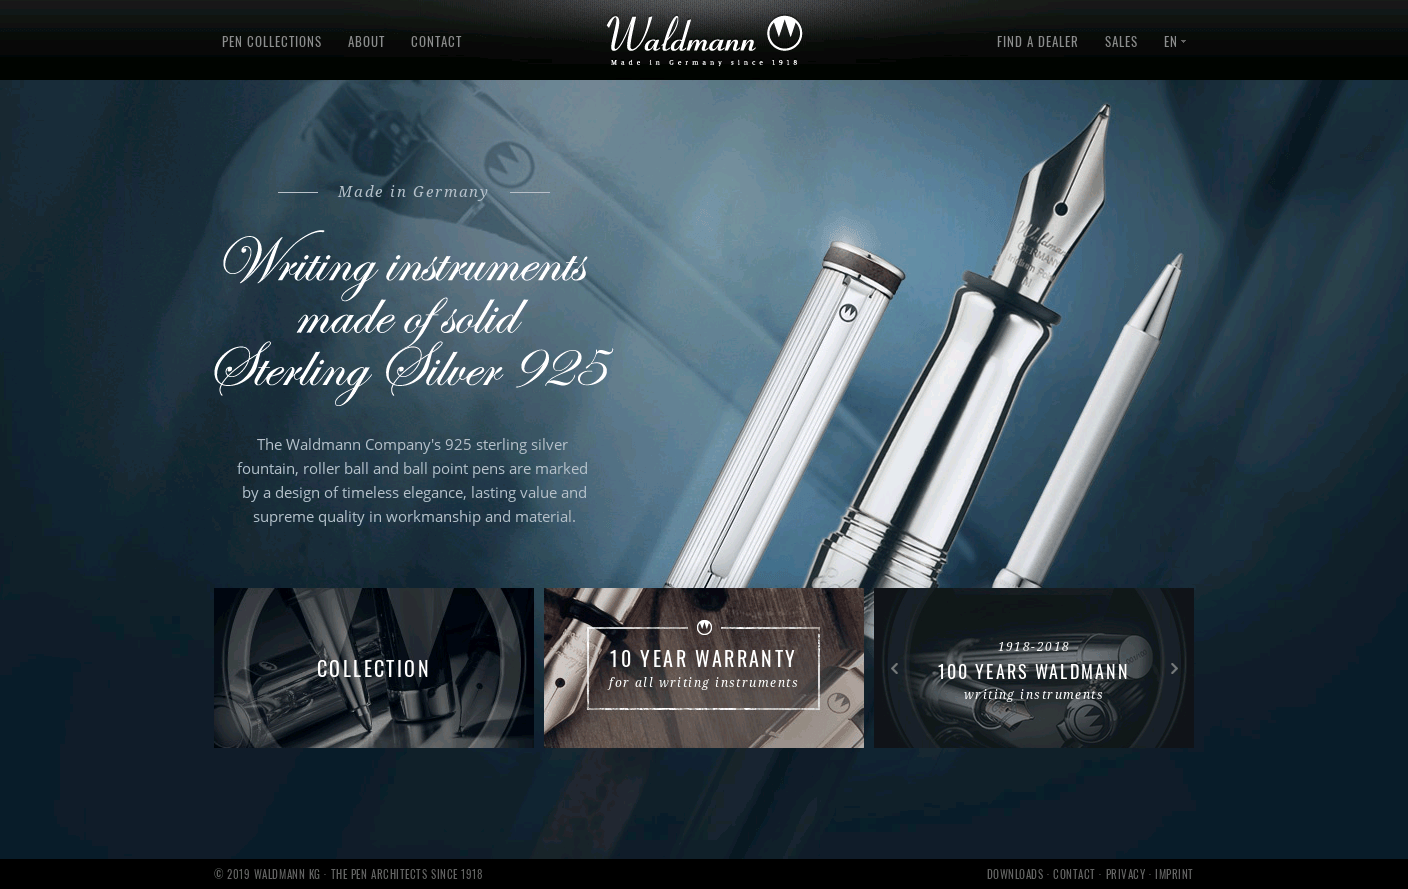 Waldmann - Exclusive Pens from Sterling Silver 925